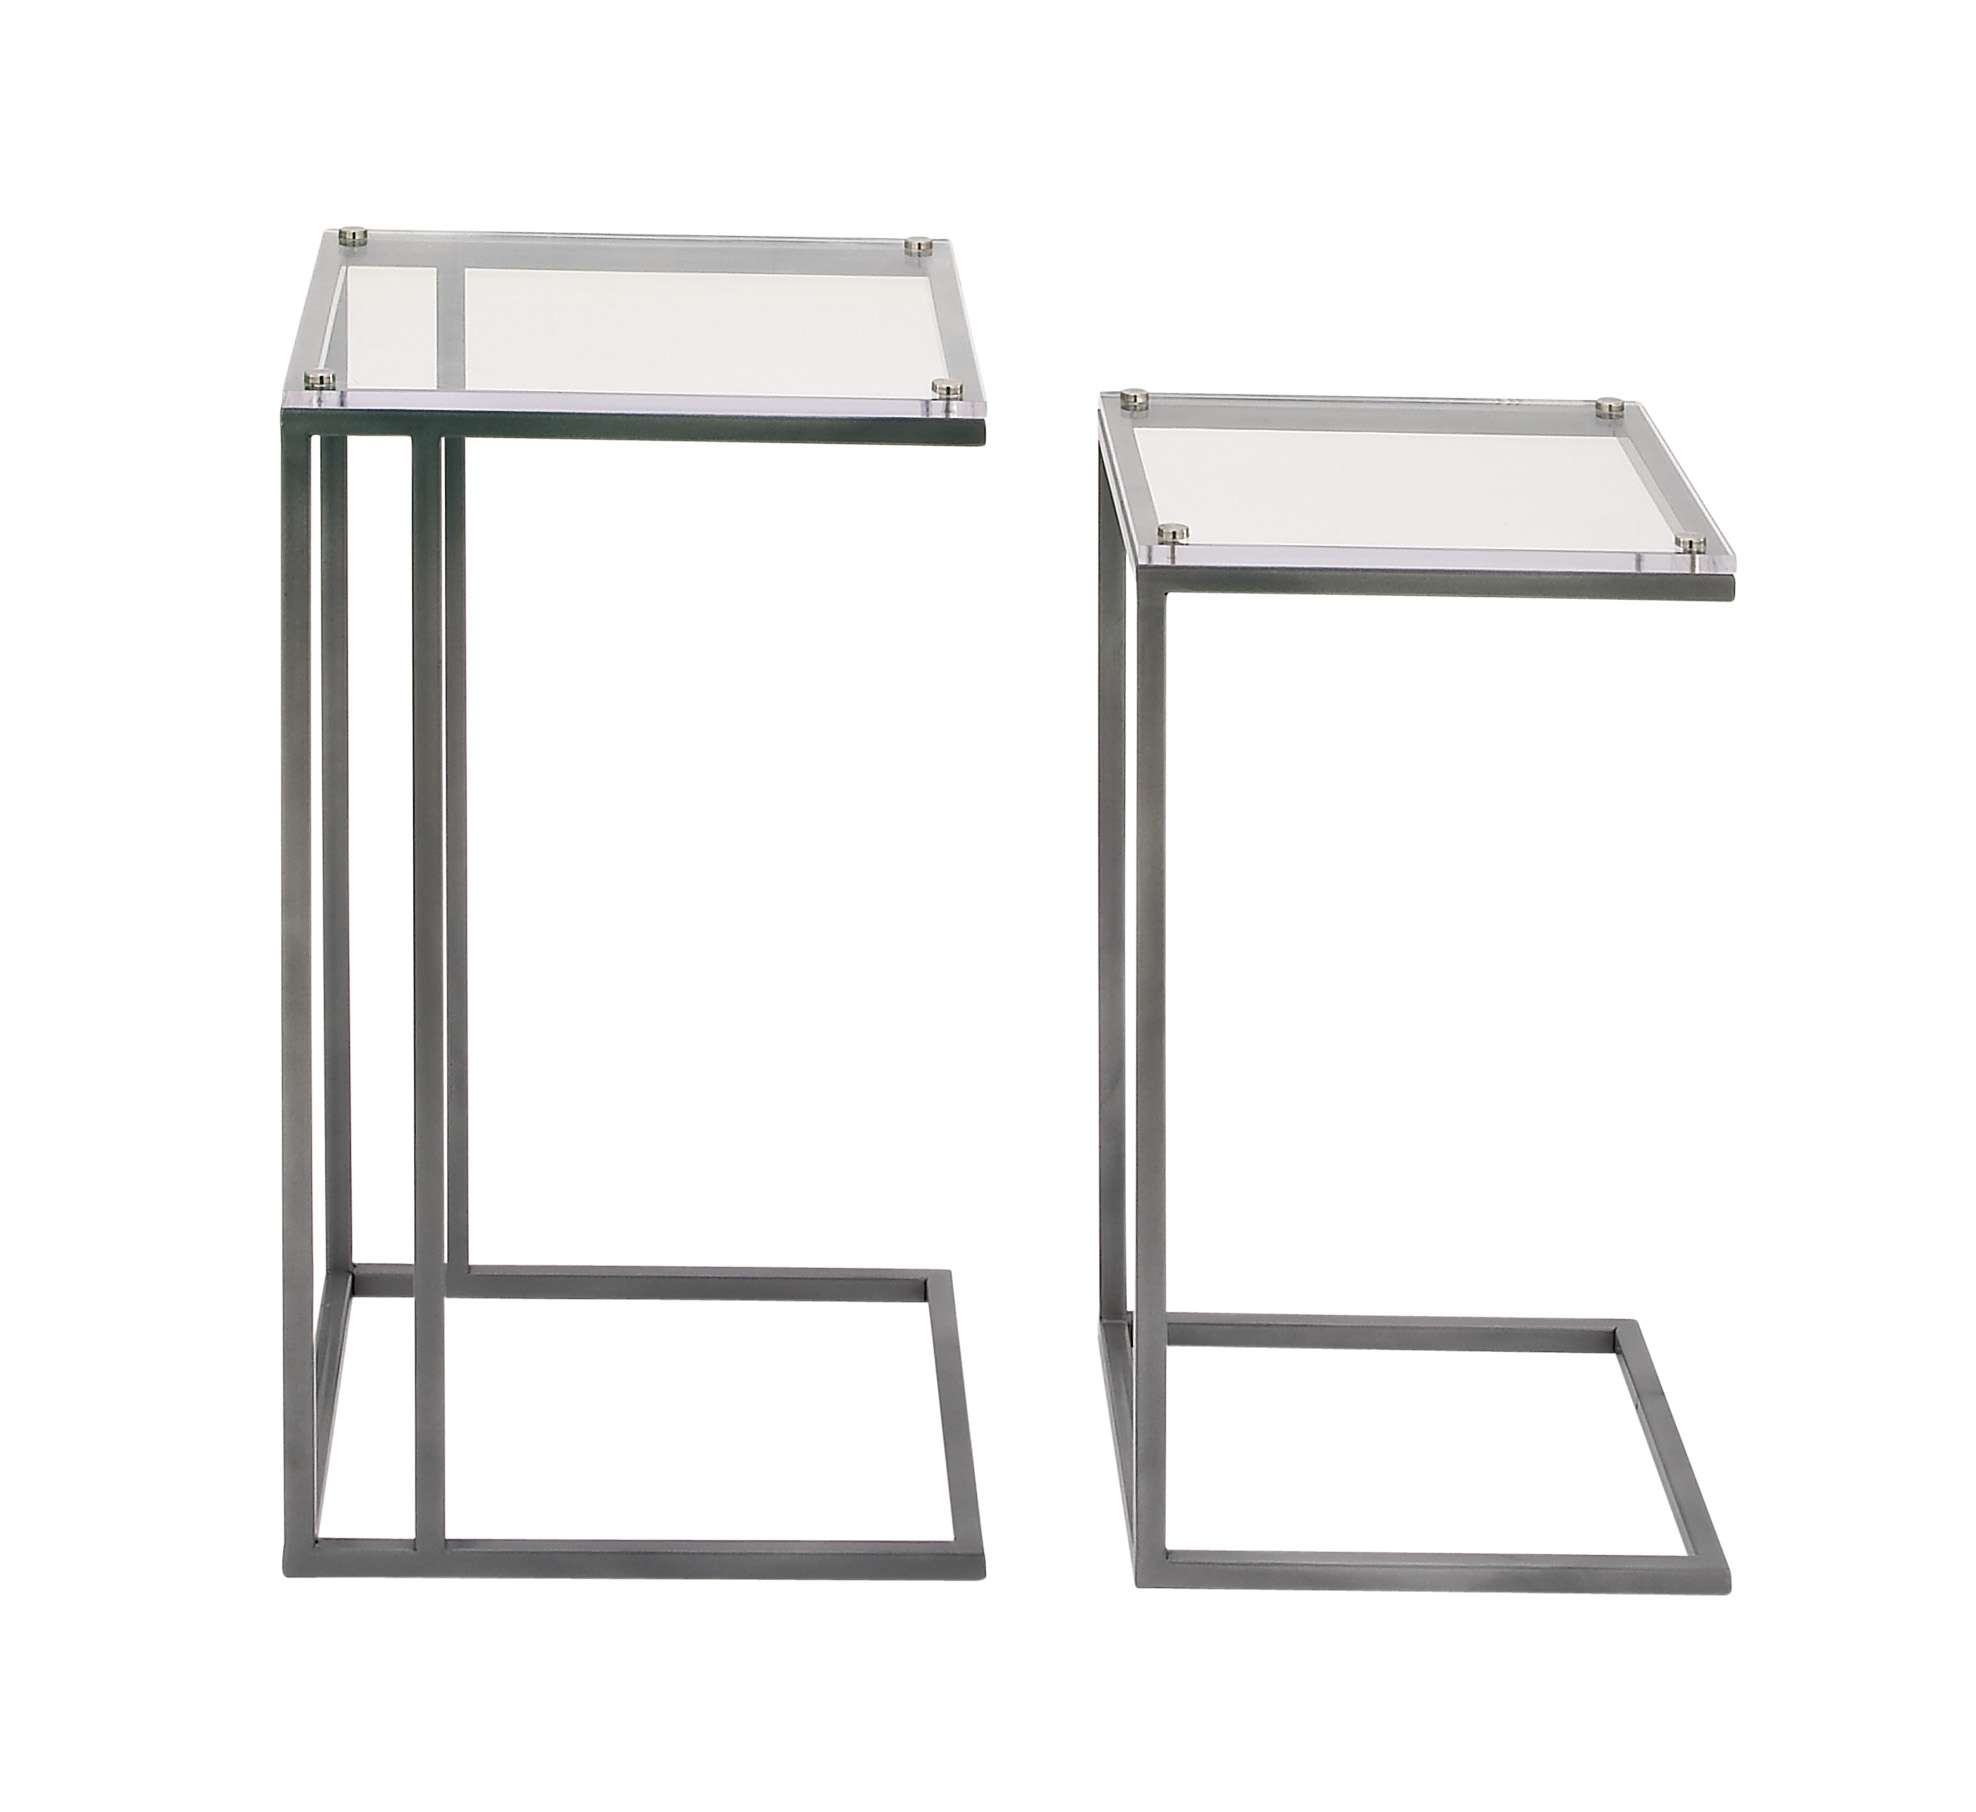 mode collection modern reflections metal acrylic accent table decmode set black end height tables garden chairs lucite waterfall coffee legs wooden grill ashley furniture room